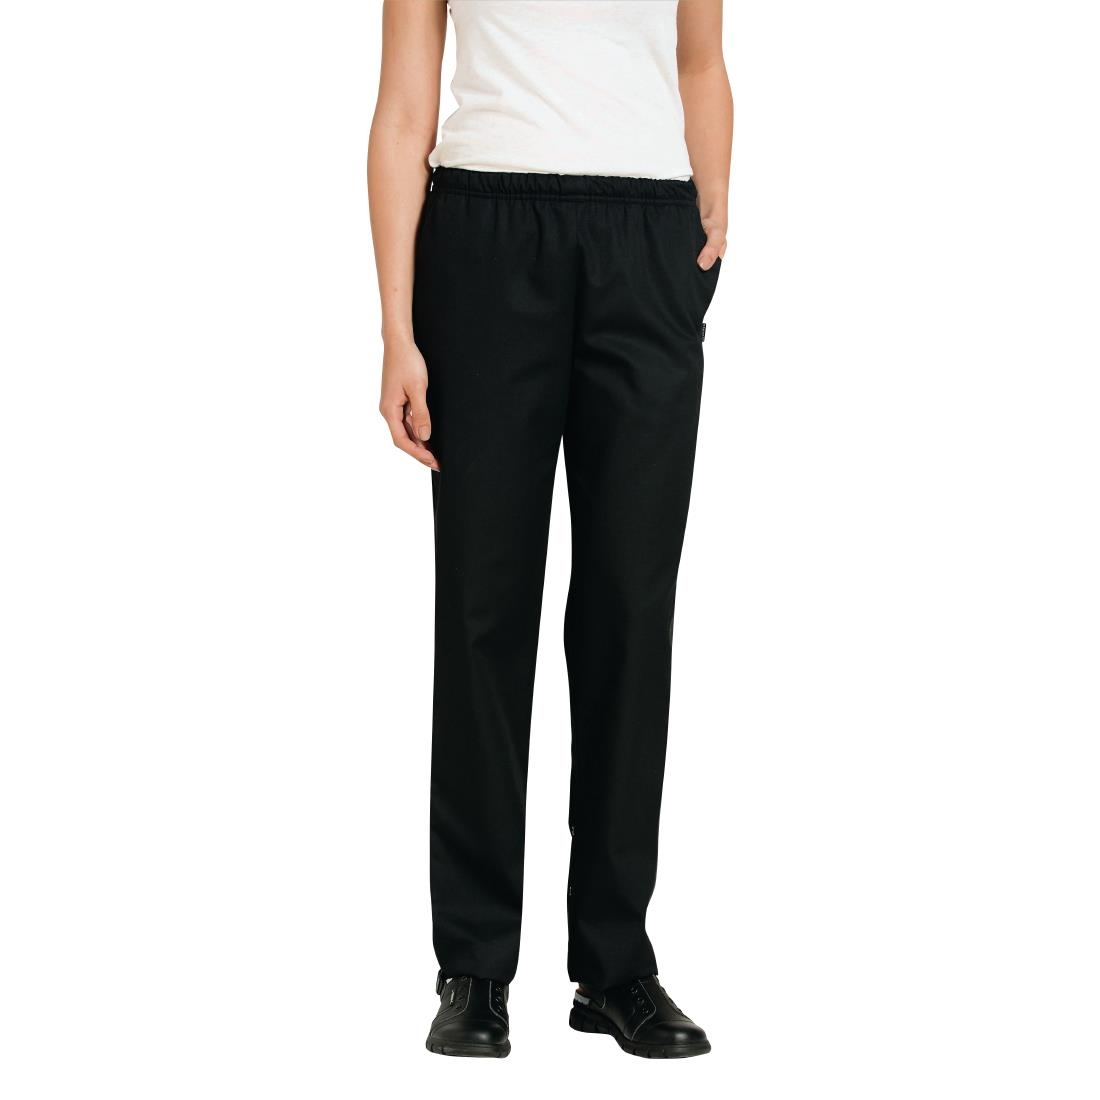 Bragard Atti Womens Trousers Black Size S